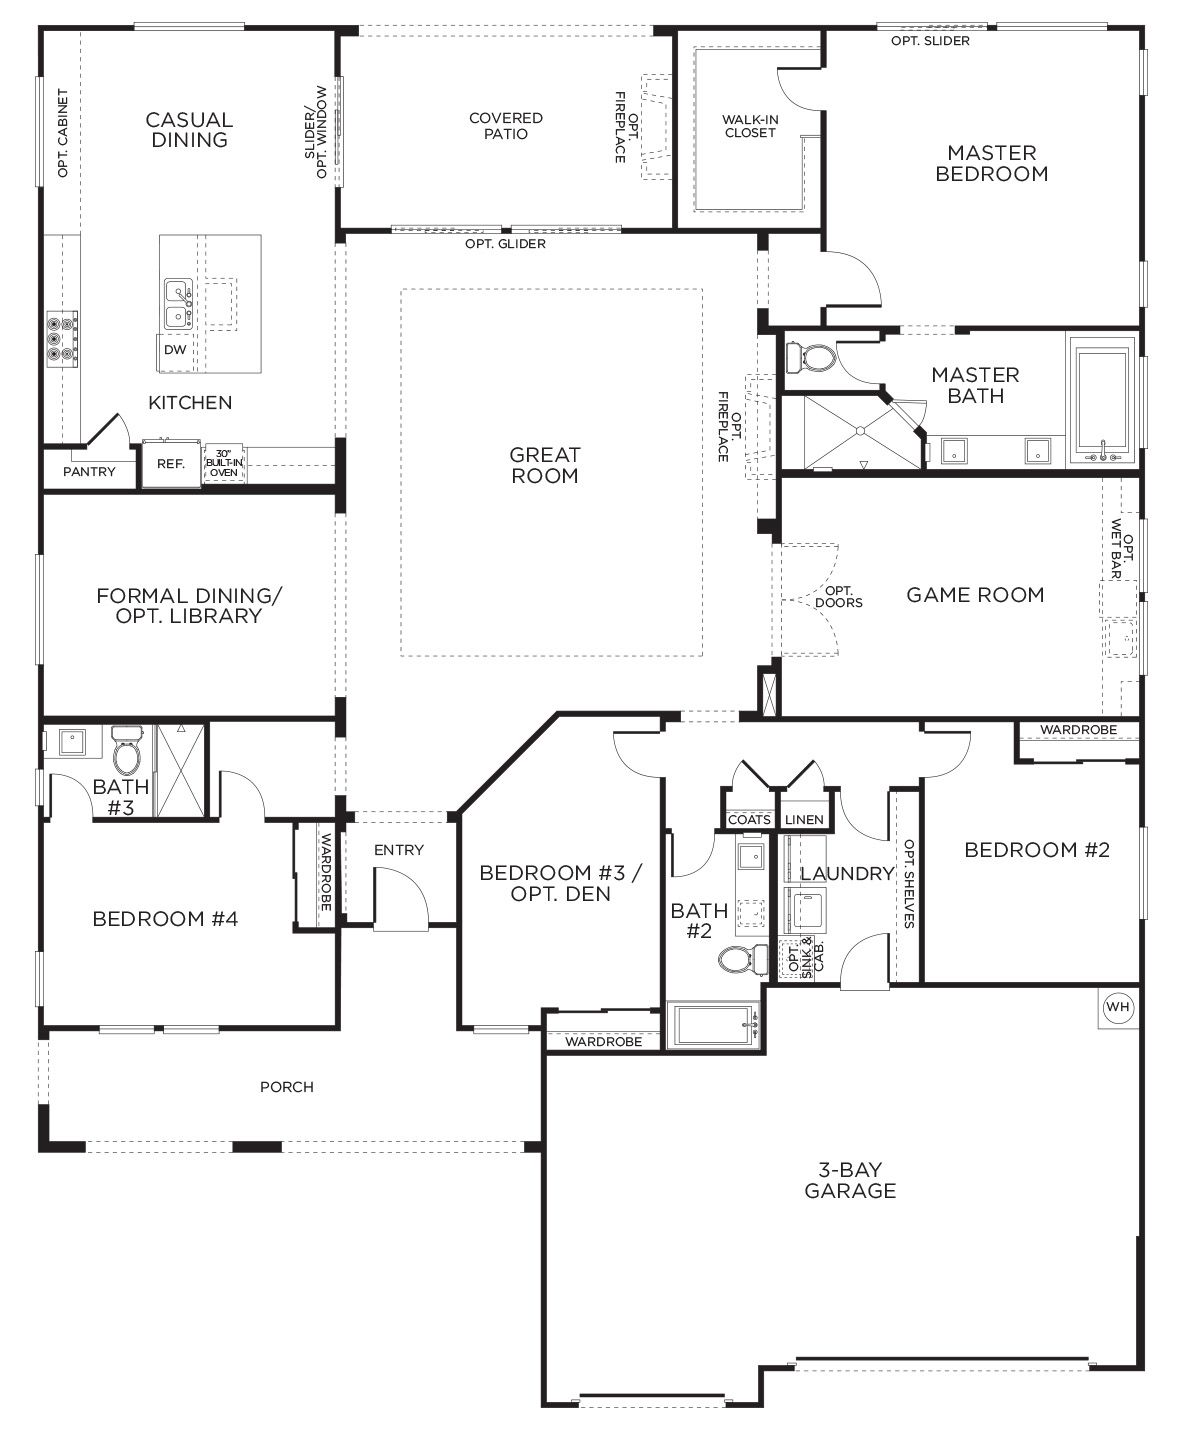 Make your own house plans online for free  House plans  My future home  Pinterest  House Laundry and Nice